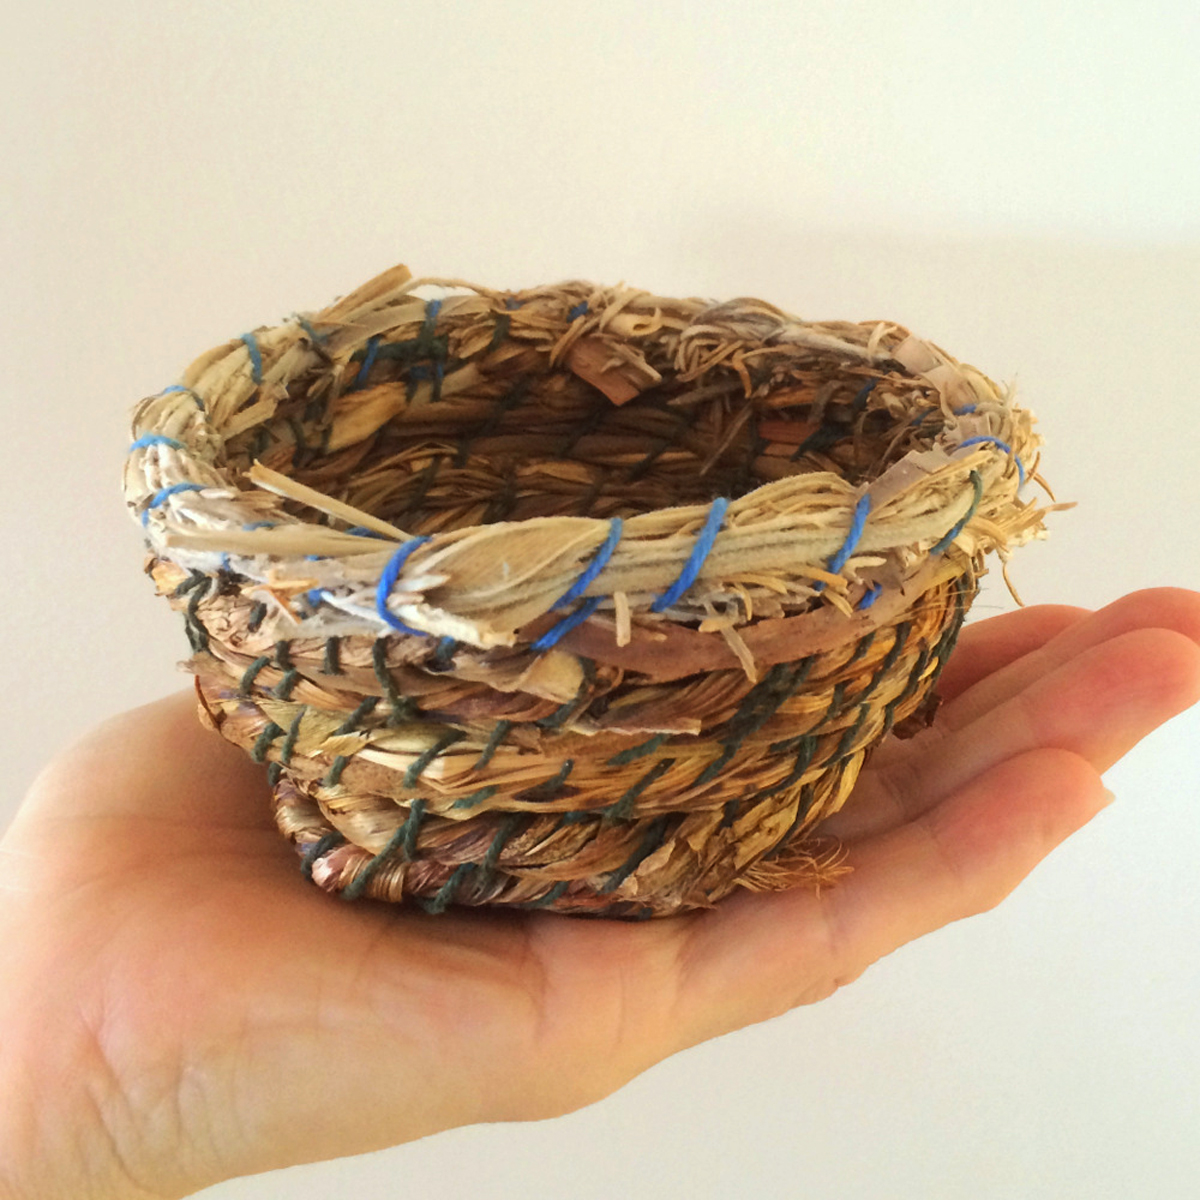 Leanne's first basket ever made nearly 20 years ago